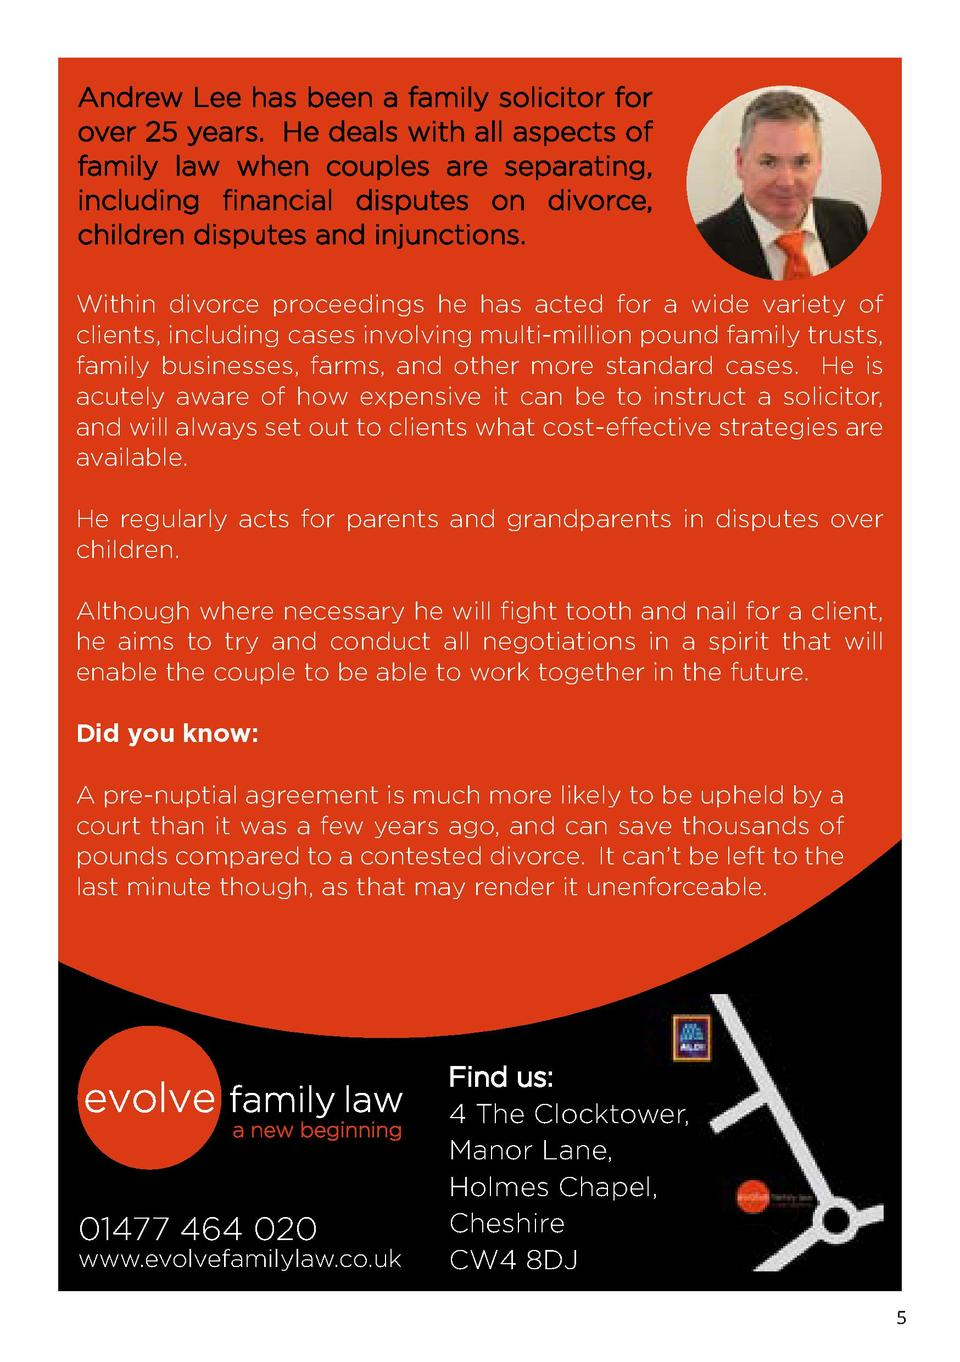 Andrew Lee has been a family solicitor for over 25 years. He deals with all aspects of family law when couples are separat...